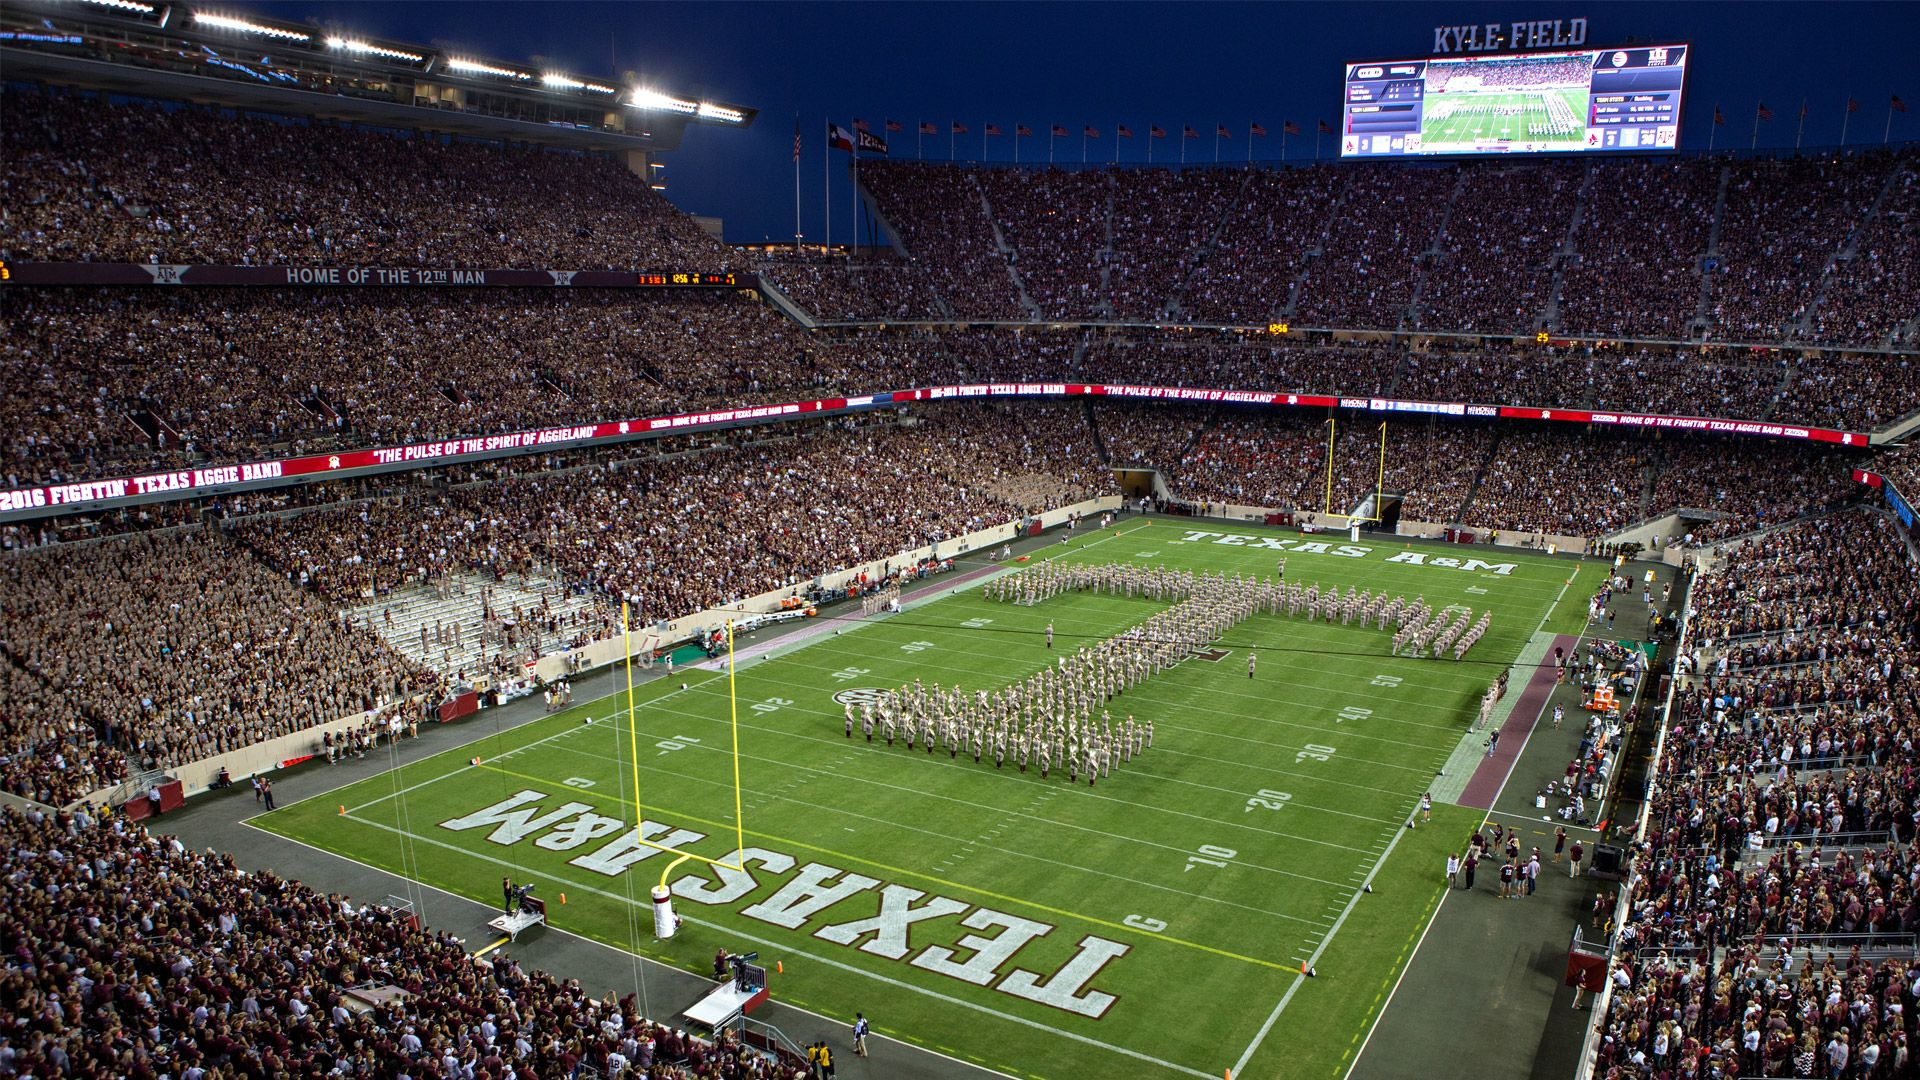 Kyle Field College Station A M Football Texas A M Football Texas A M